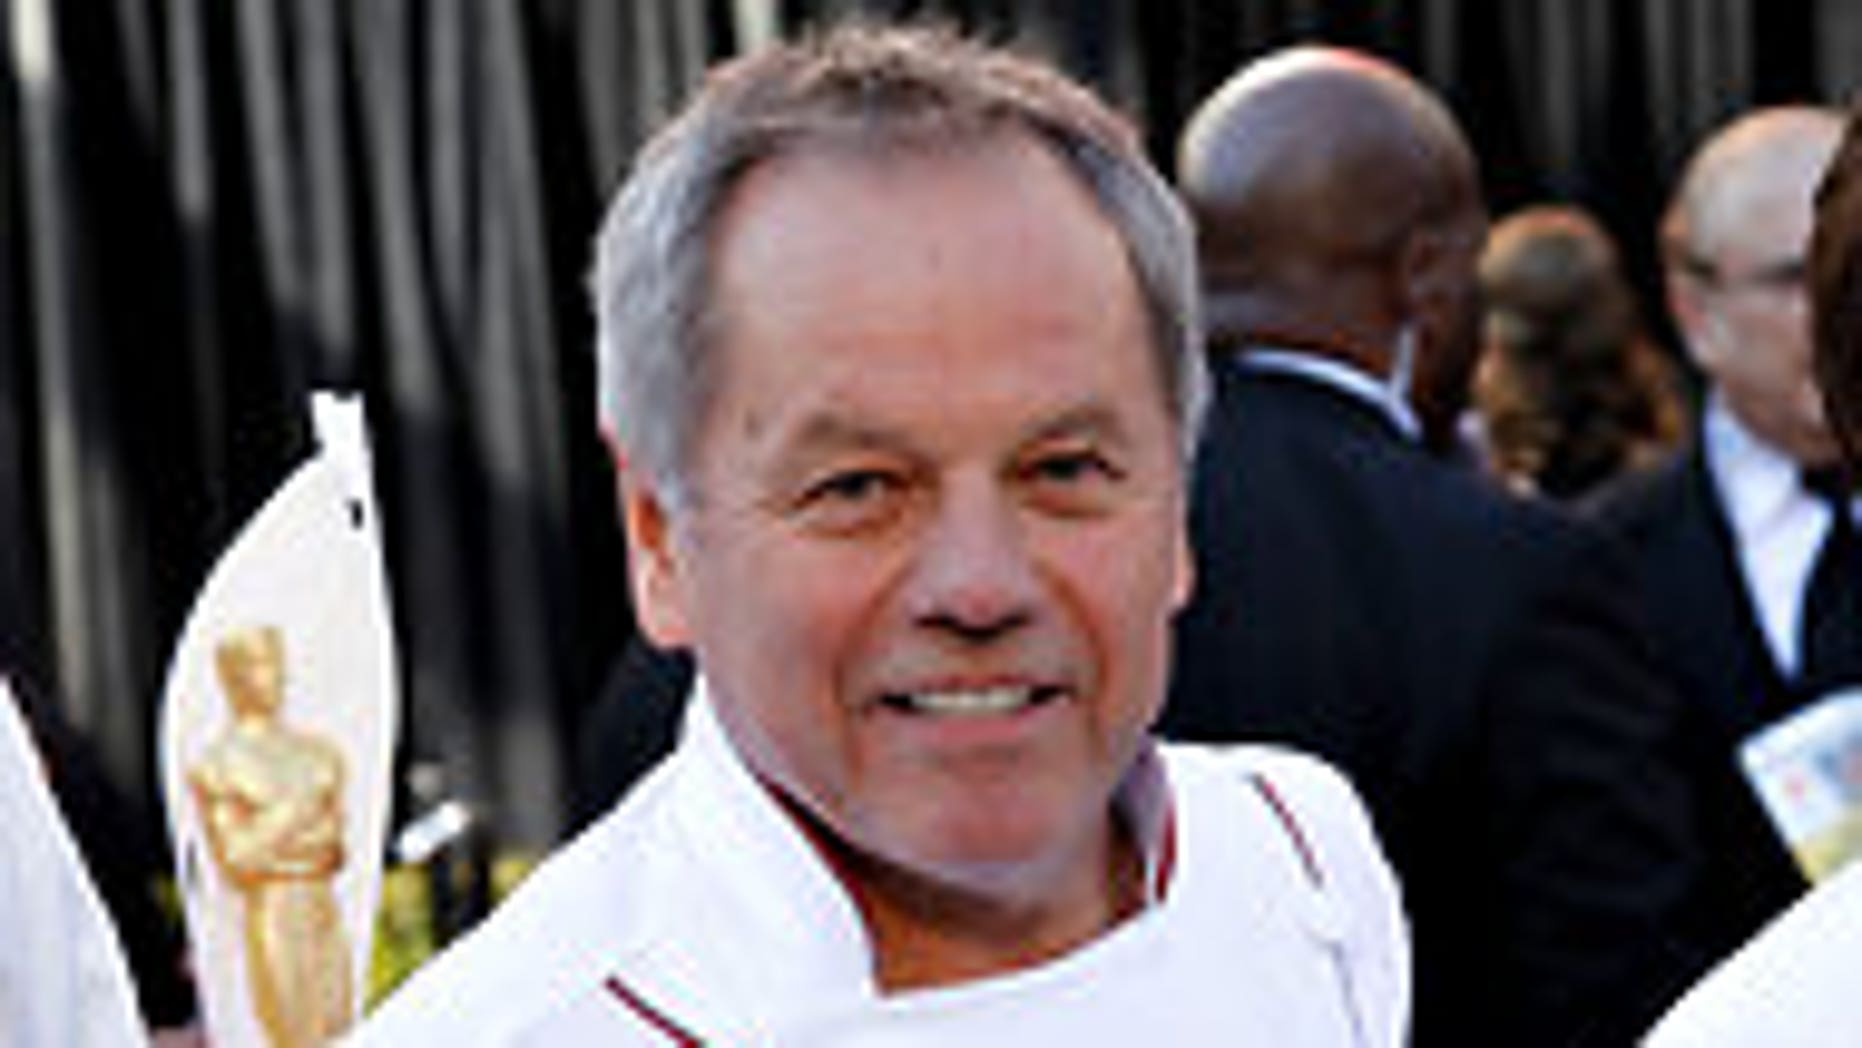 Wolfgang Puck will be the second superstar chef on Hollywood's Walk of Fame in 2017.